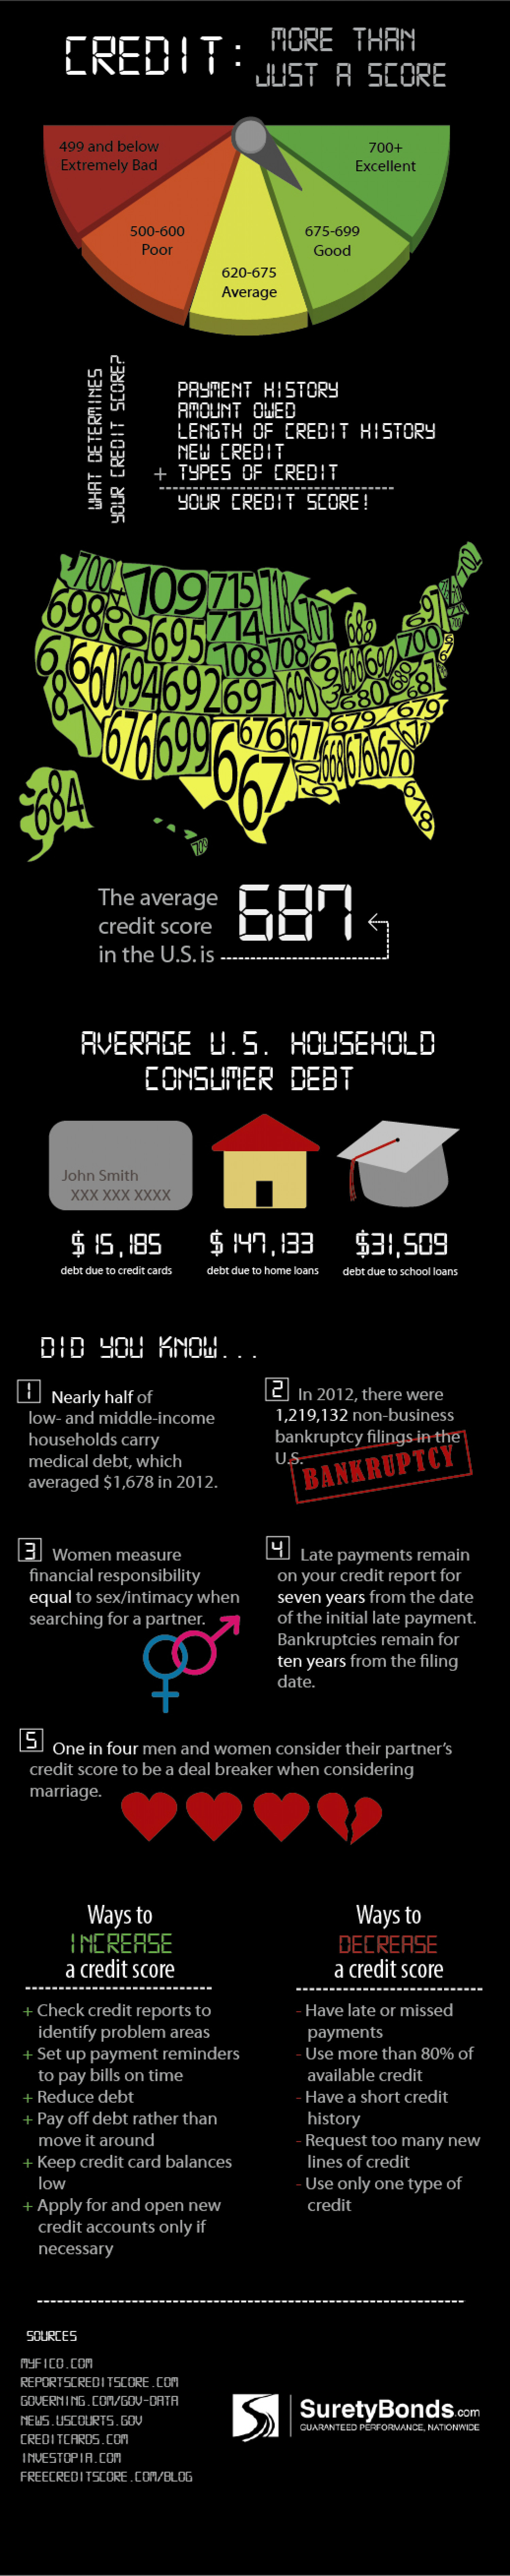 Credit: More than just a score Infographic